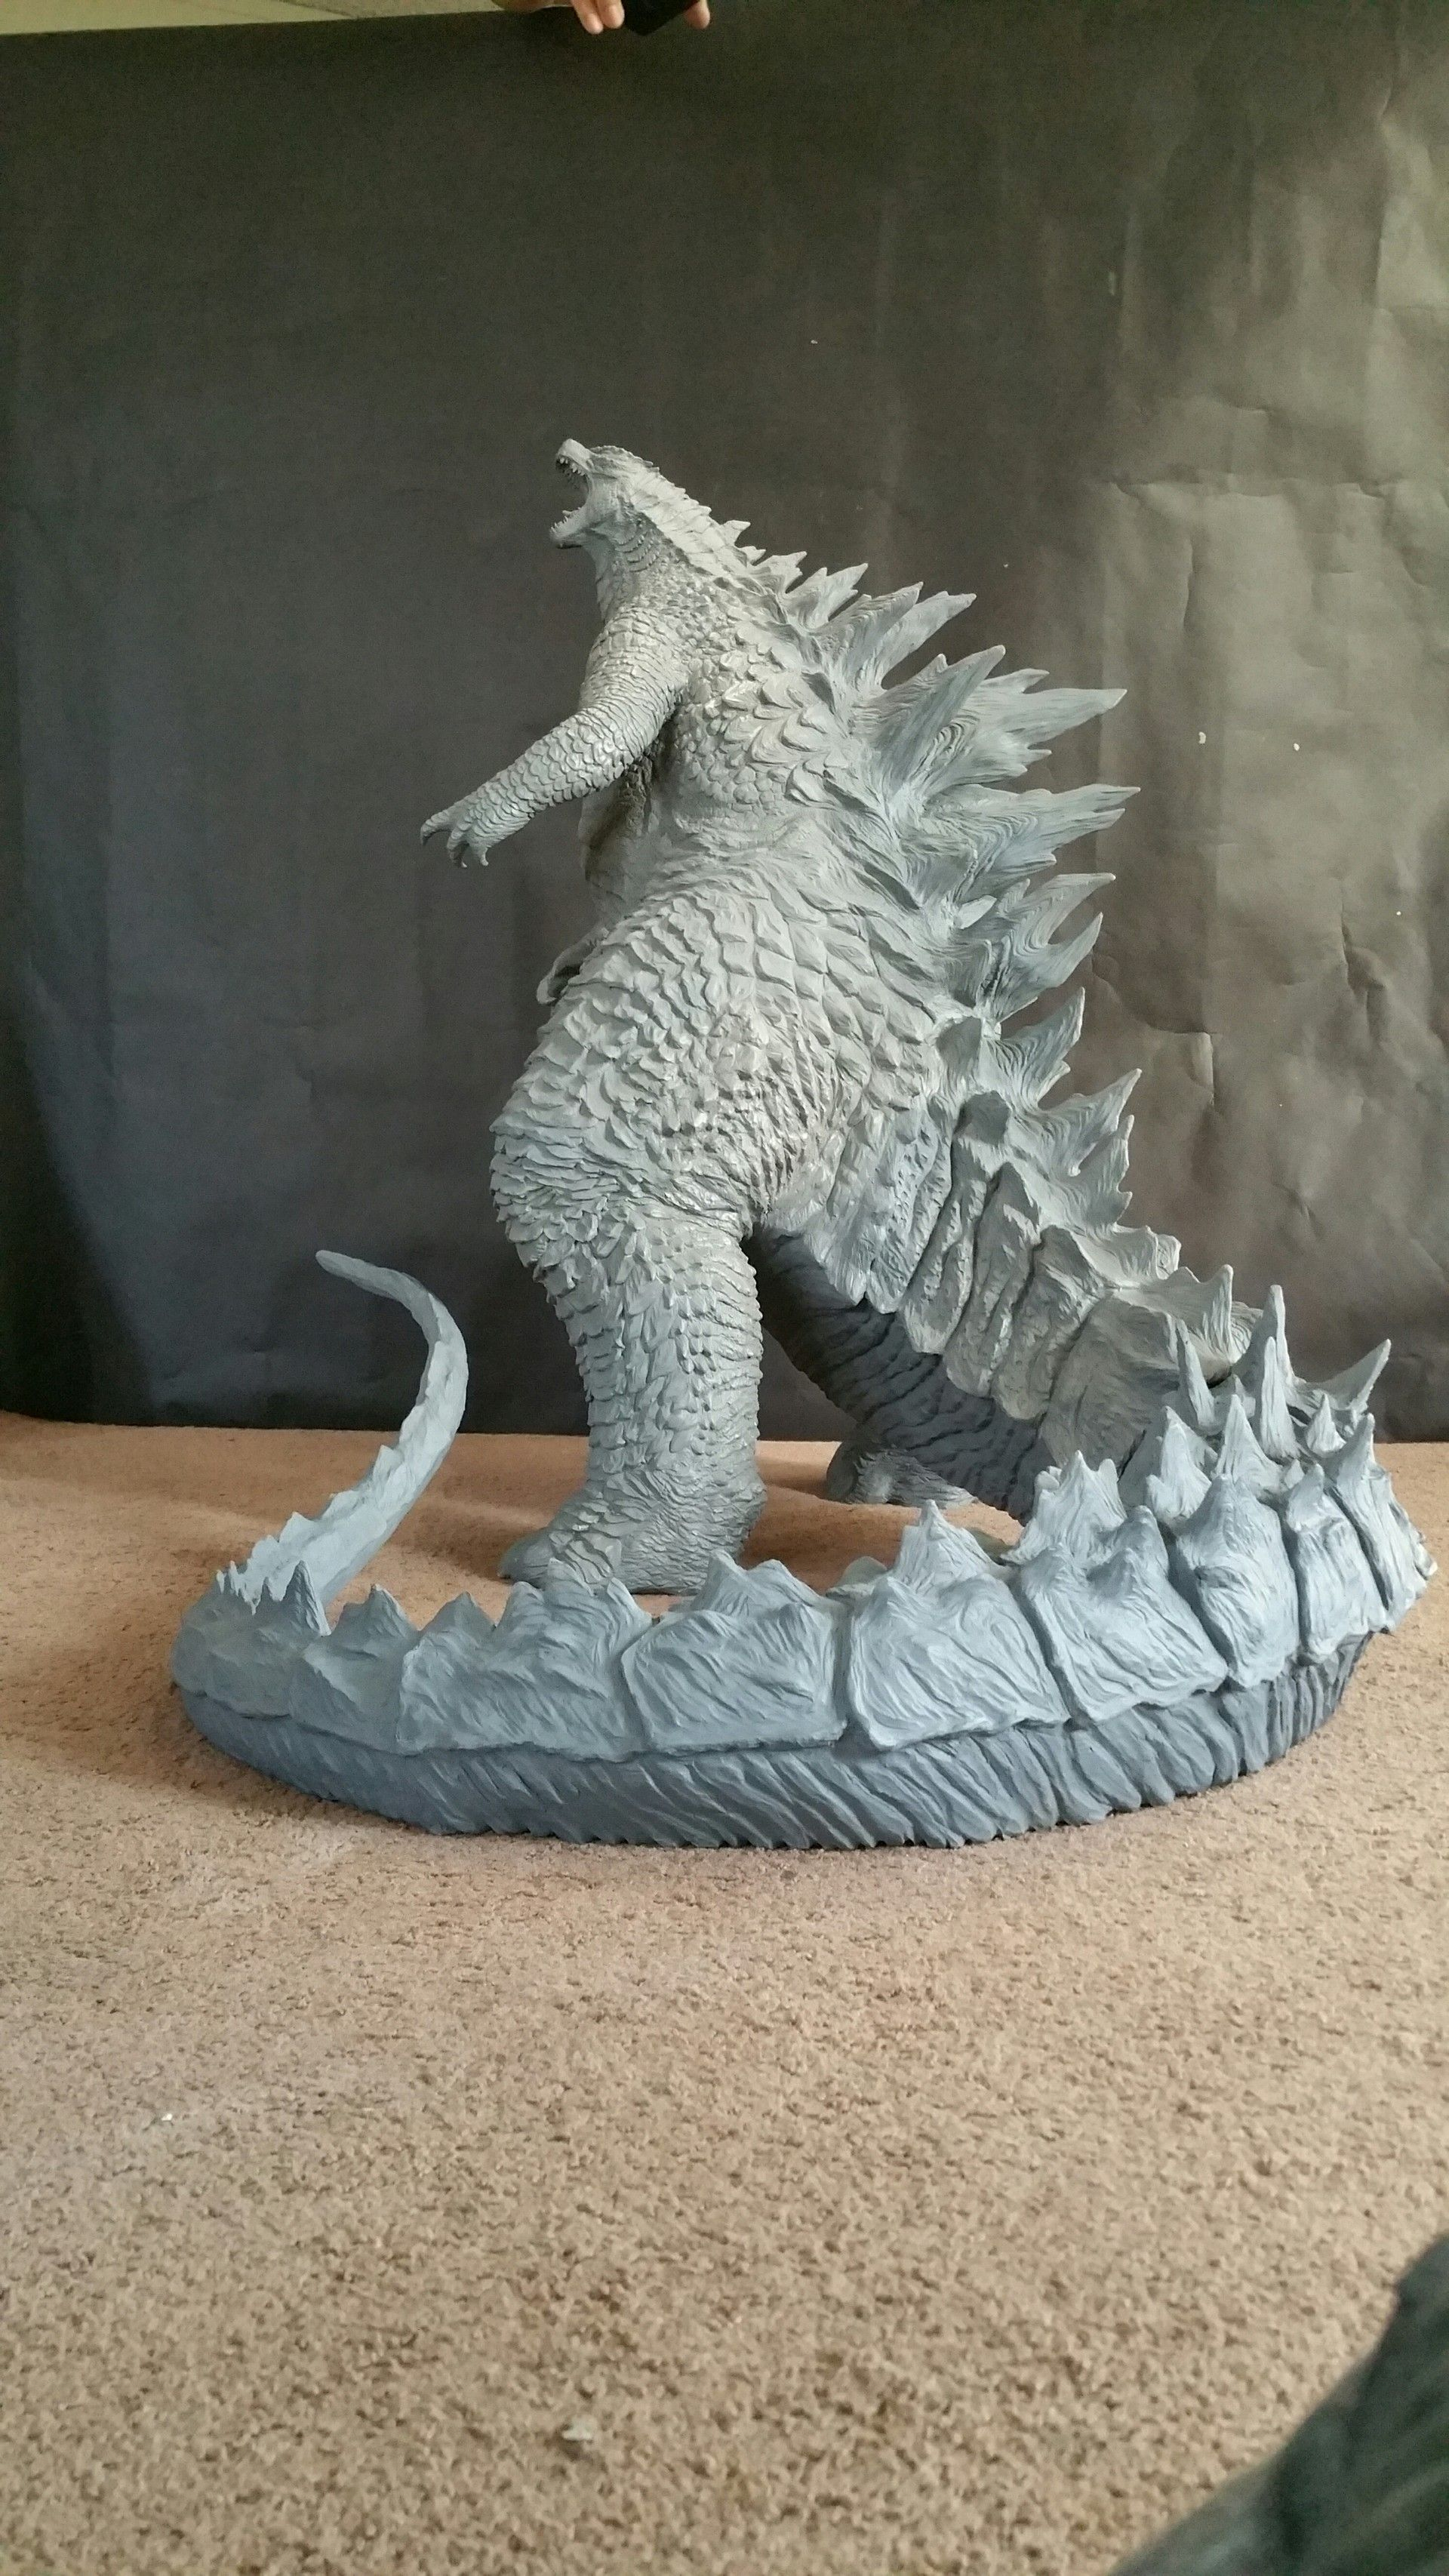 Here S A Look At The Godzilla Statue I Sculpted A Few Years Back